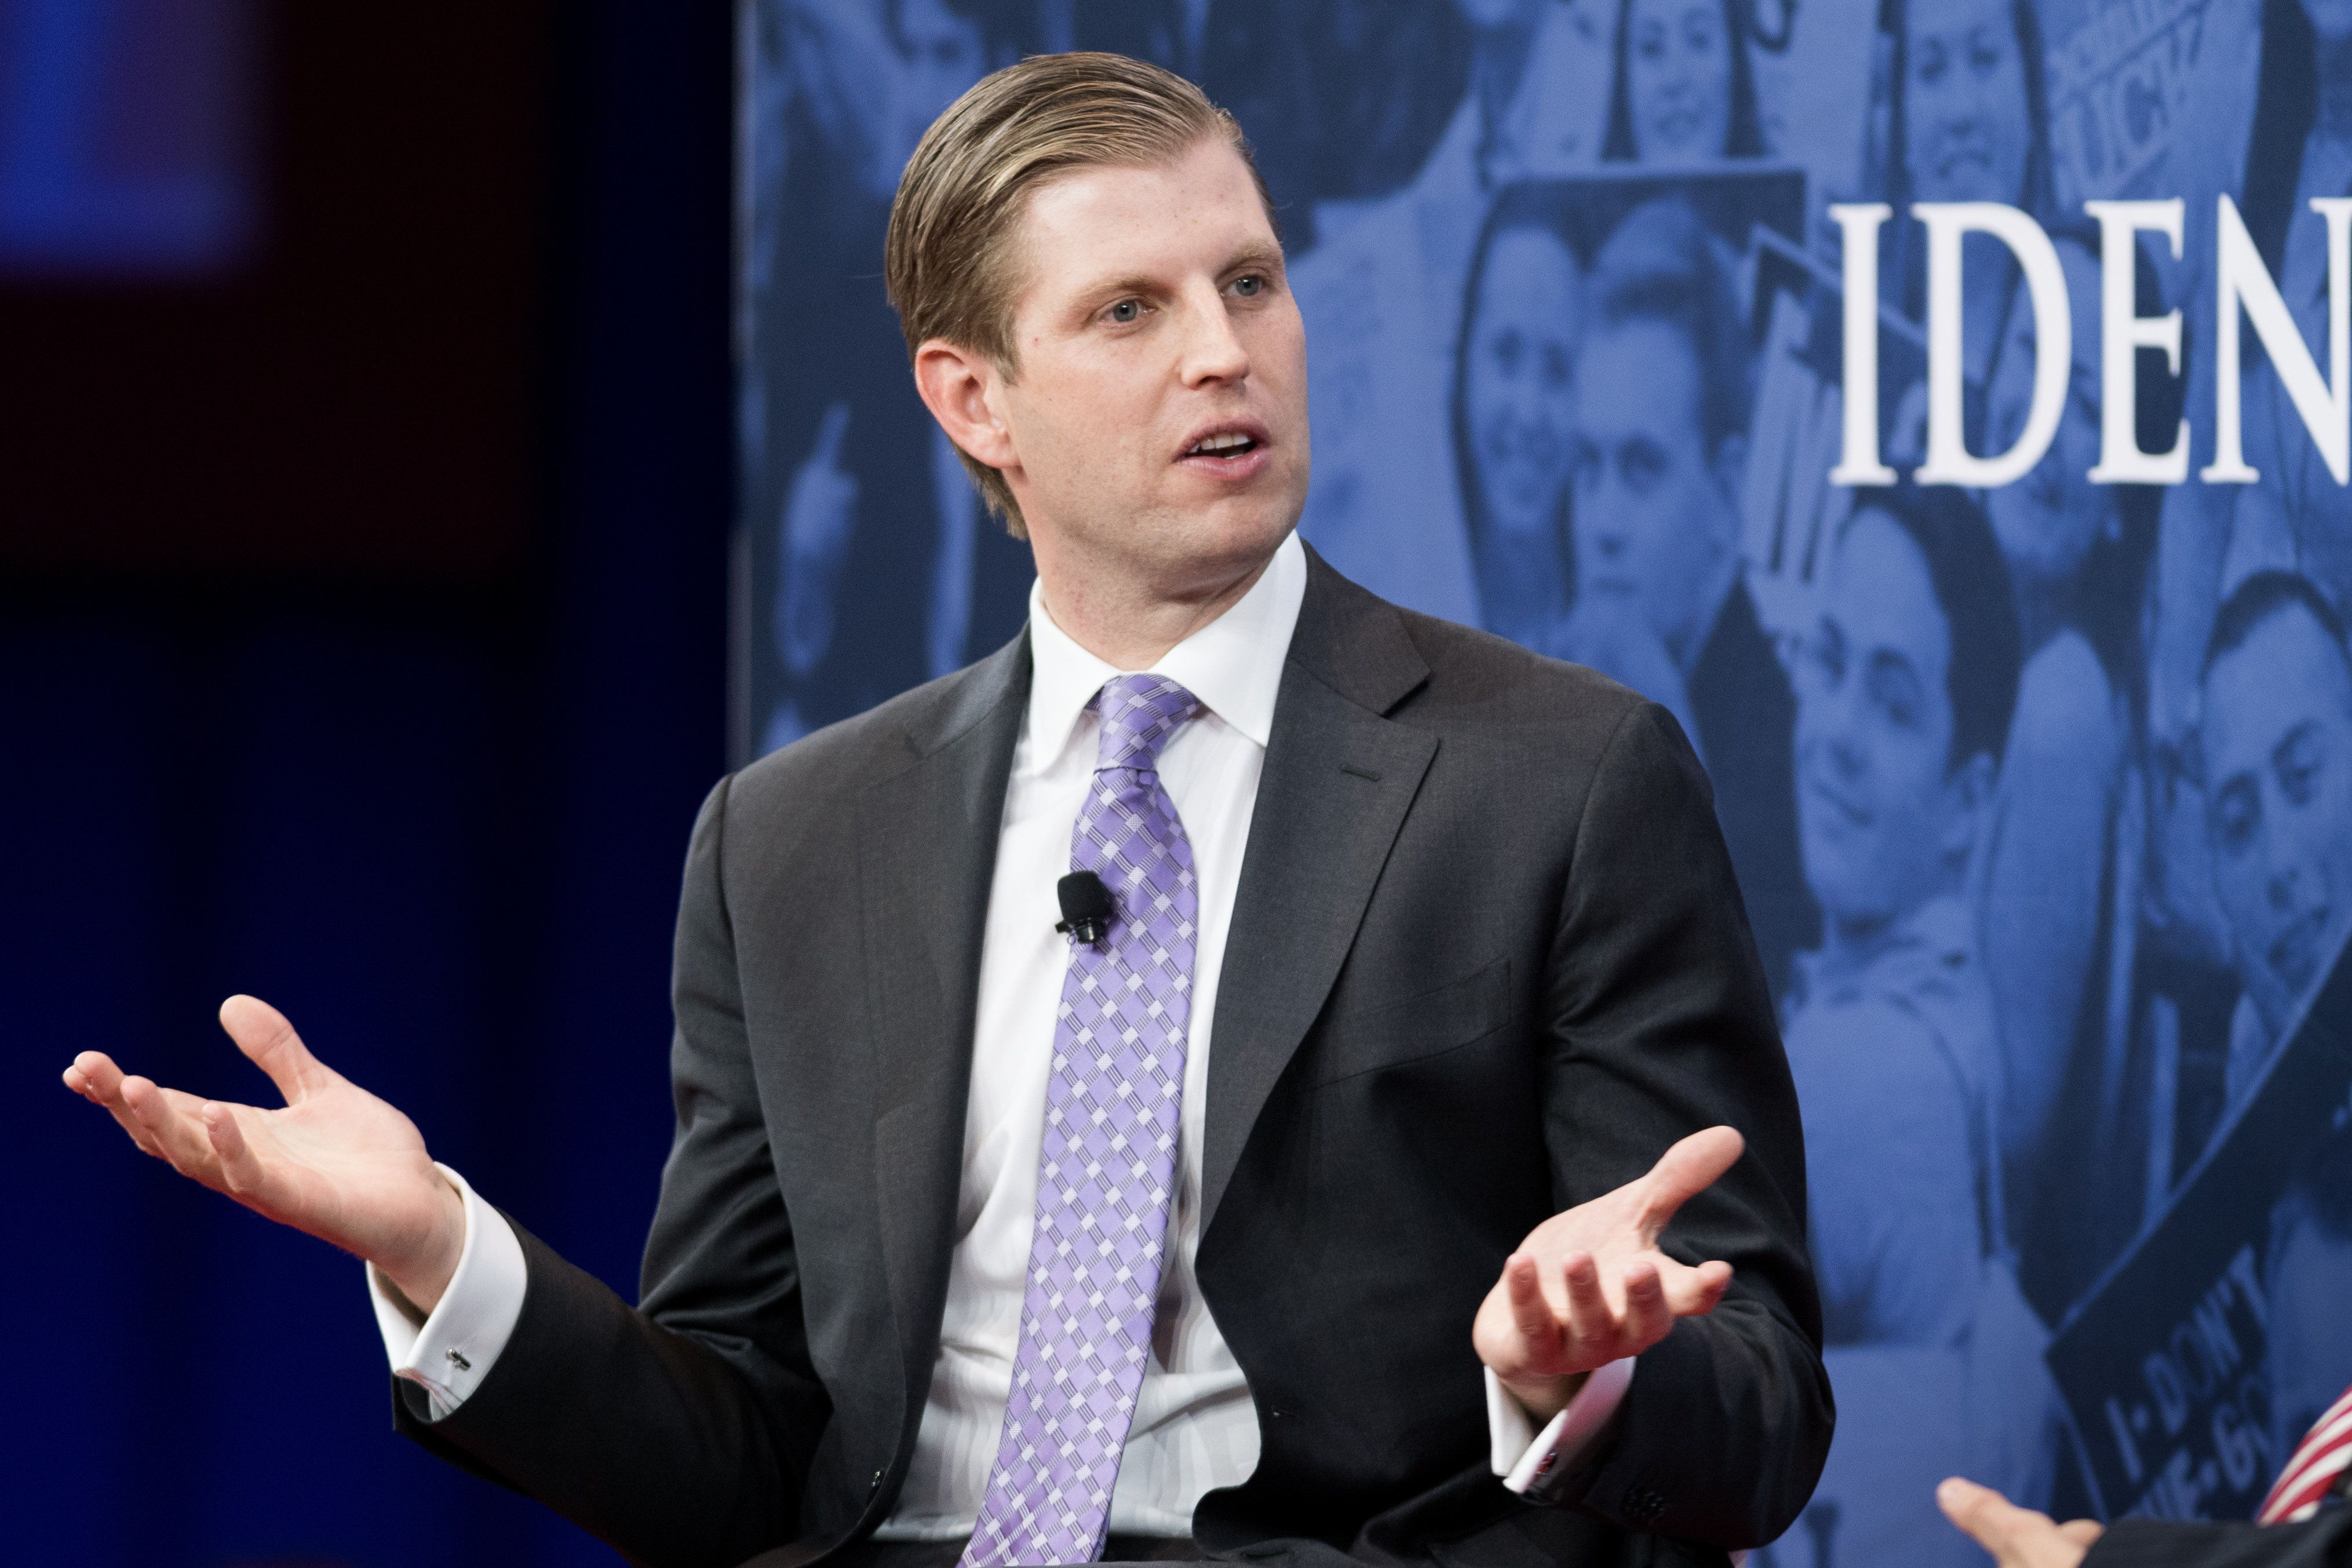 Eric Trump at the Conservative Political Action Conference (CPAC) sponsored by the American Conservative Union held at the Gaylord National Resort & Convention Center in Oxon Hill, MD on February 22, 2018 (Photo by Michael Brochstein/Sipa USA)